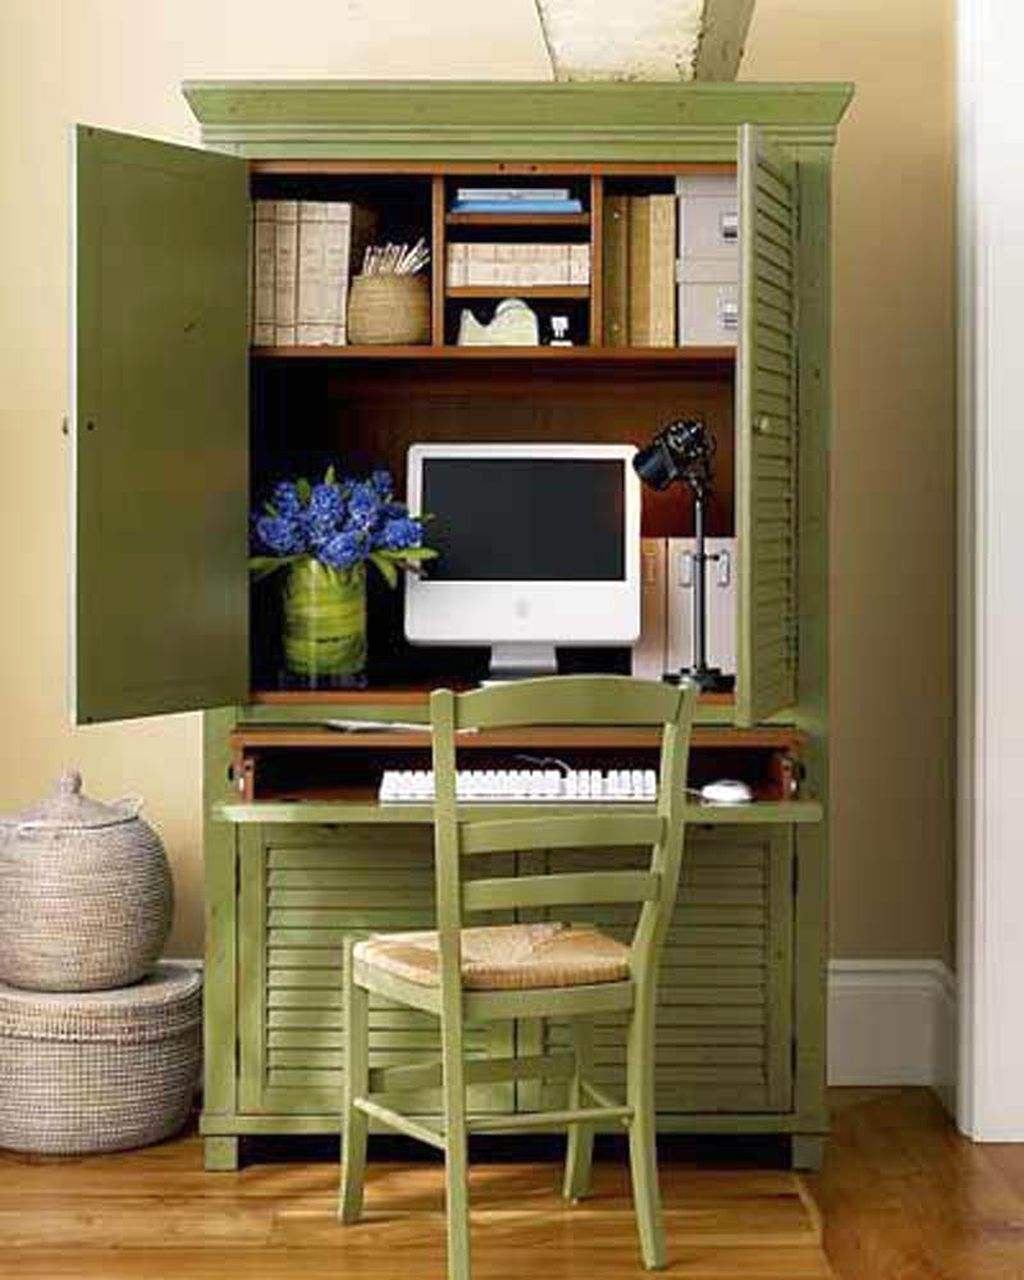 green cupboard home office design ideas for small spaces. Black Bedroom Furniture Sets. Home Design Ideas